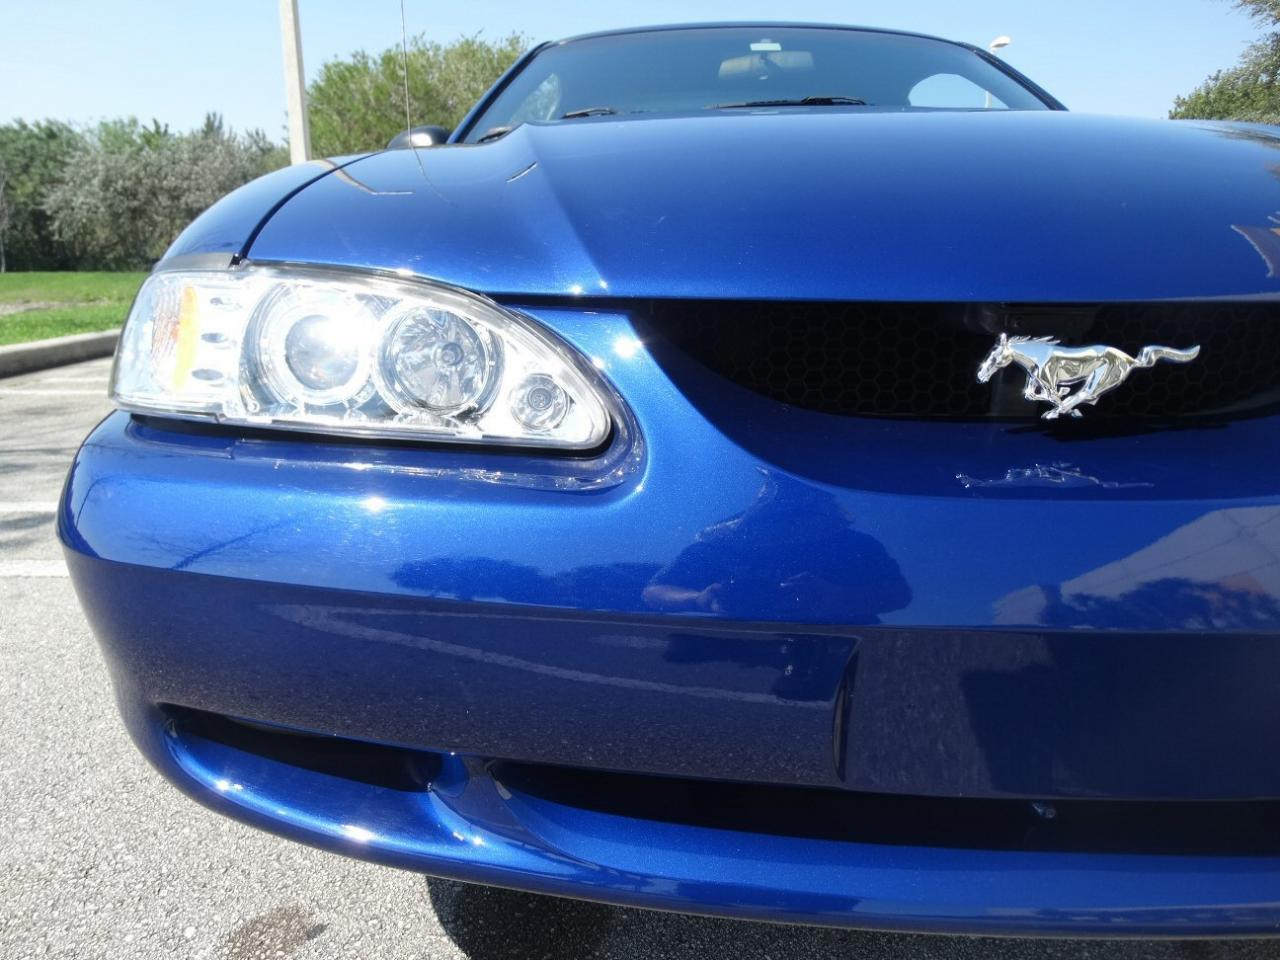 Large Picture of '96 Ford Mustang - $9,995.00 Offered by Gateway Classic Cars - Fort Lauderdale - KJ79